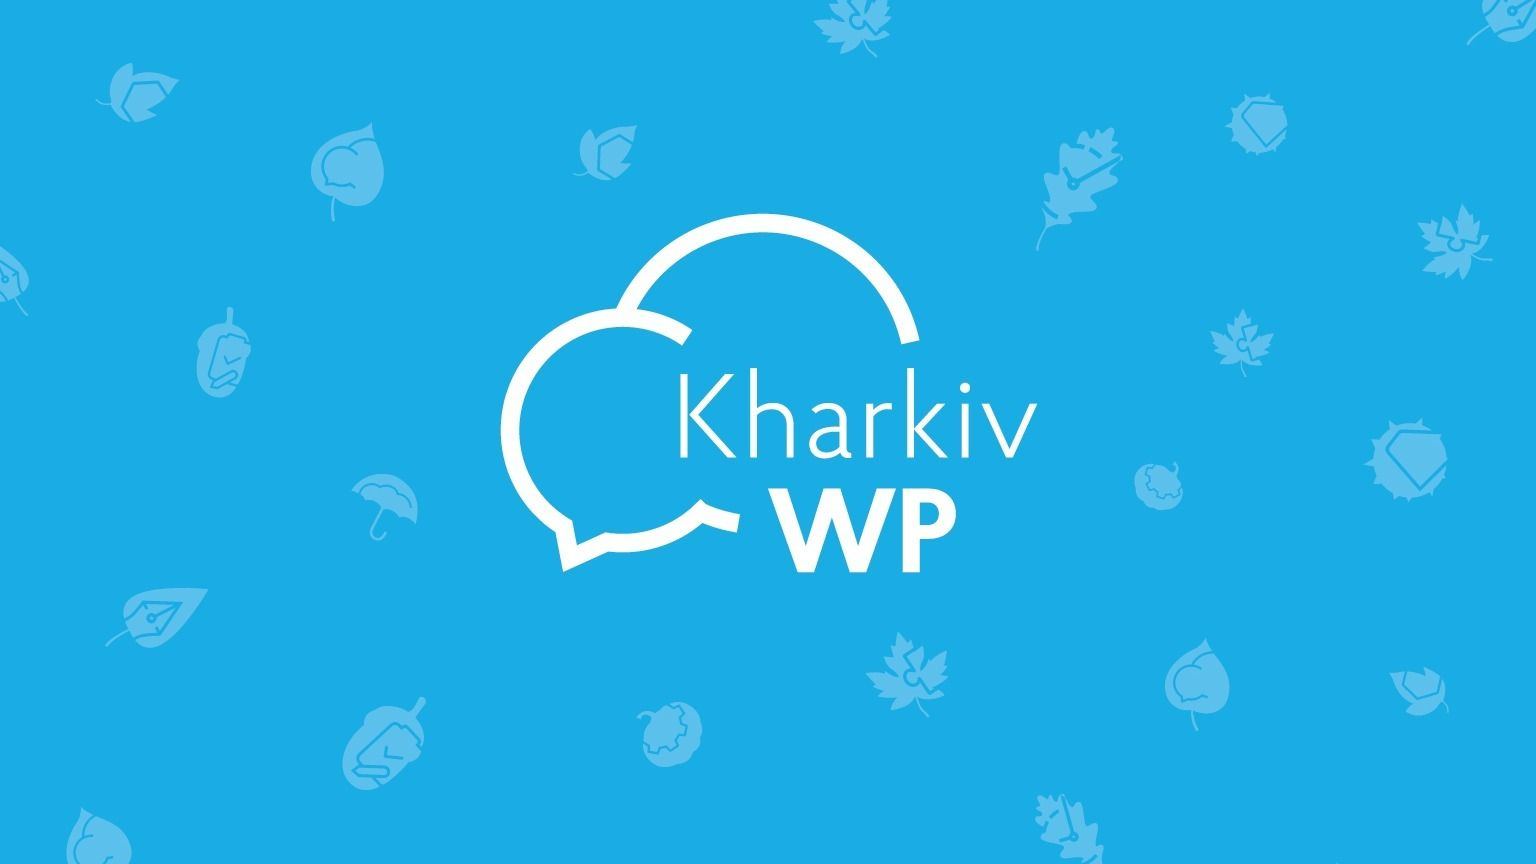 Kharkiv WordPress